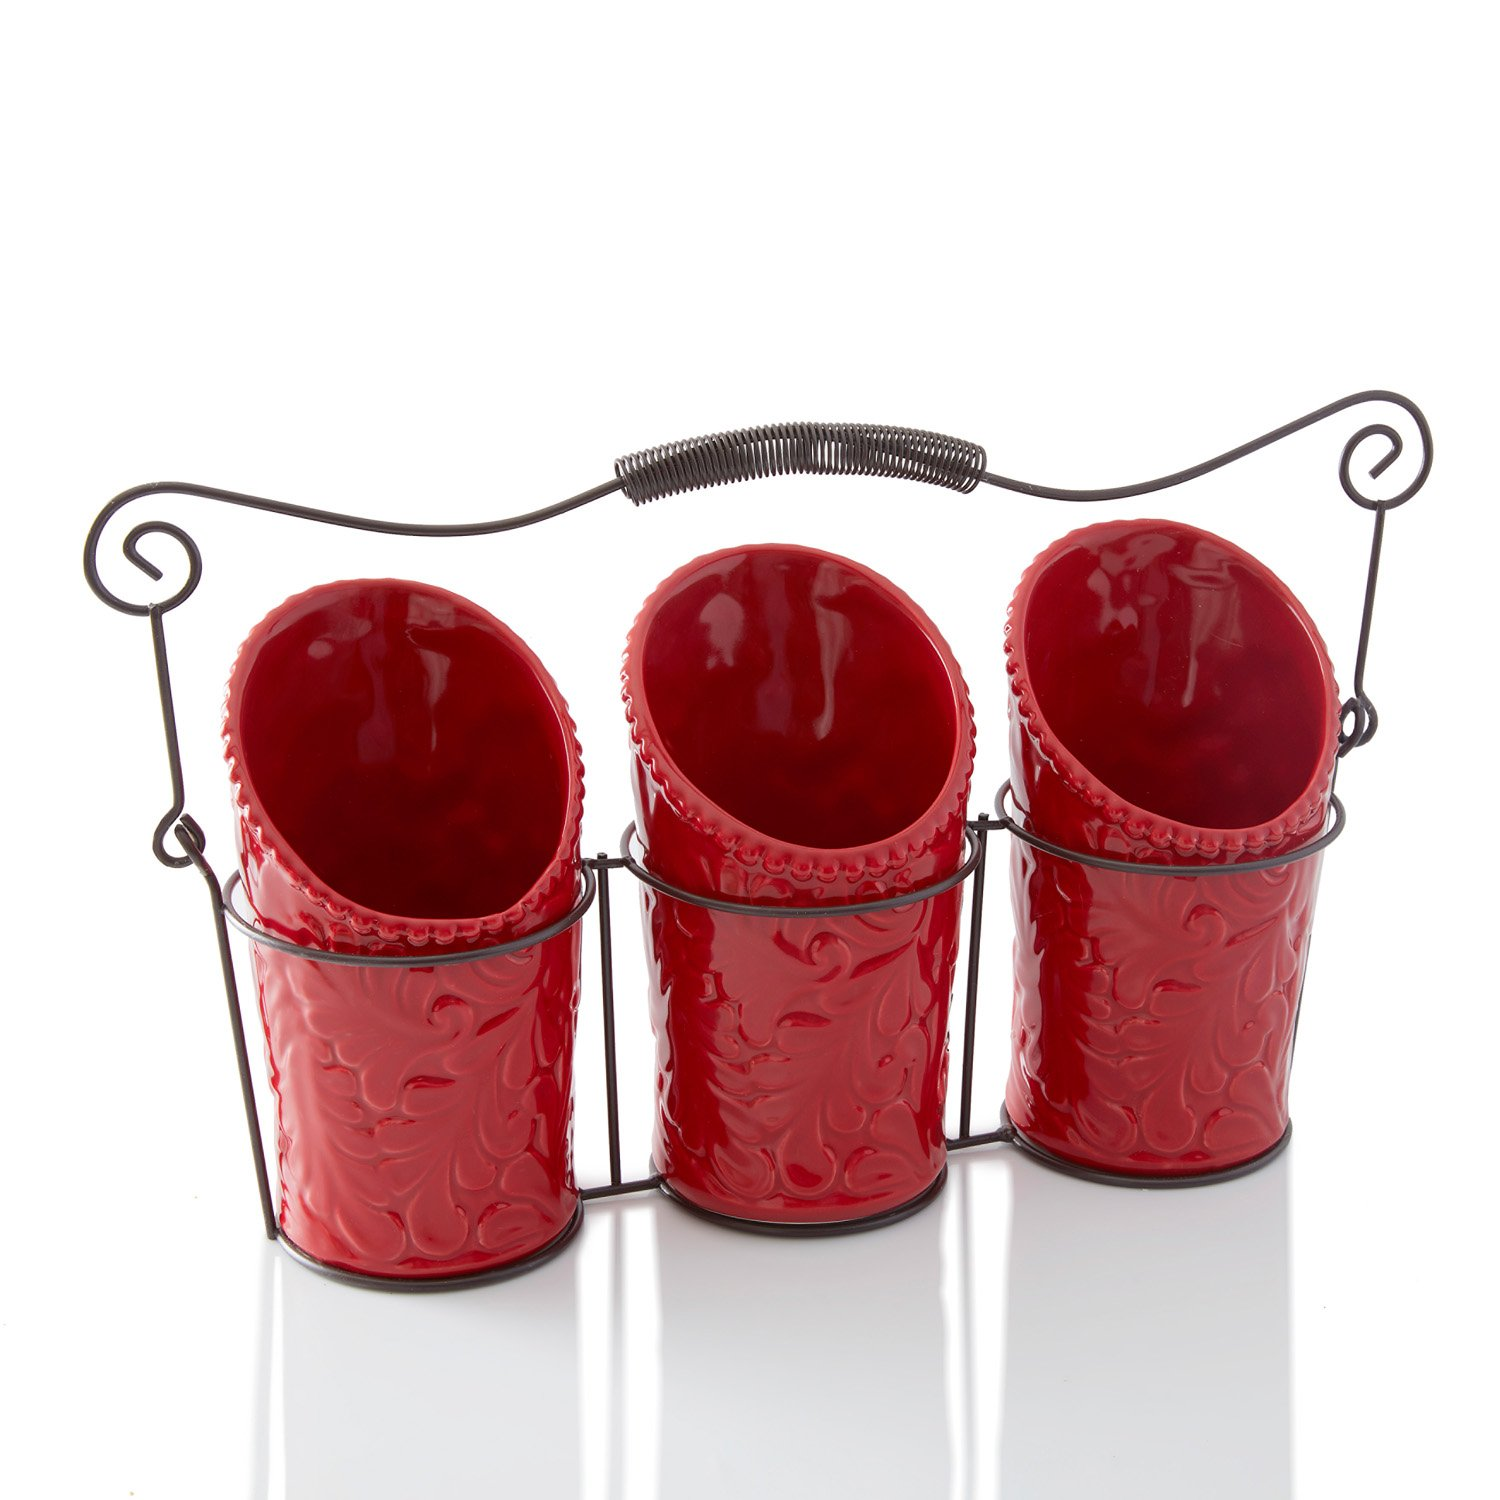 Kitchen Flatware Caddy - 3 Ceramic Utensil Holders (4'' Dia x 7'' H each) & 1 Wire Caddy - Red